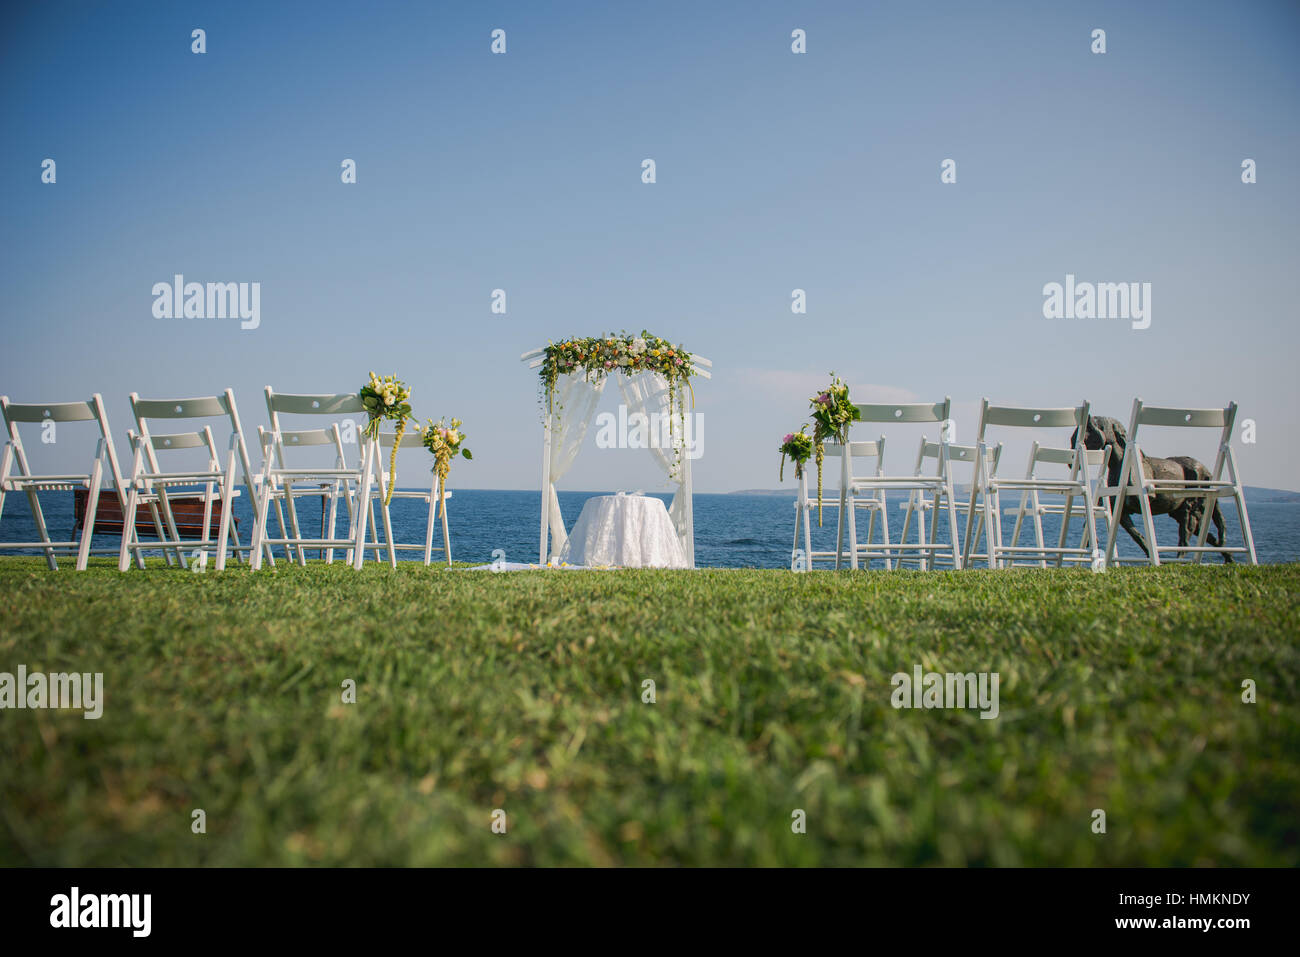 Wedding Ceremony Flowers Arch Chairs With Black Sea In The Stock Photo Alamy